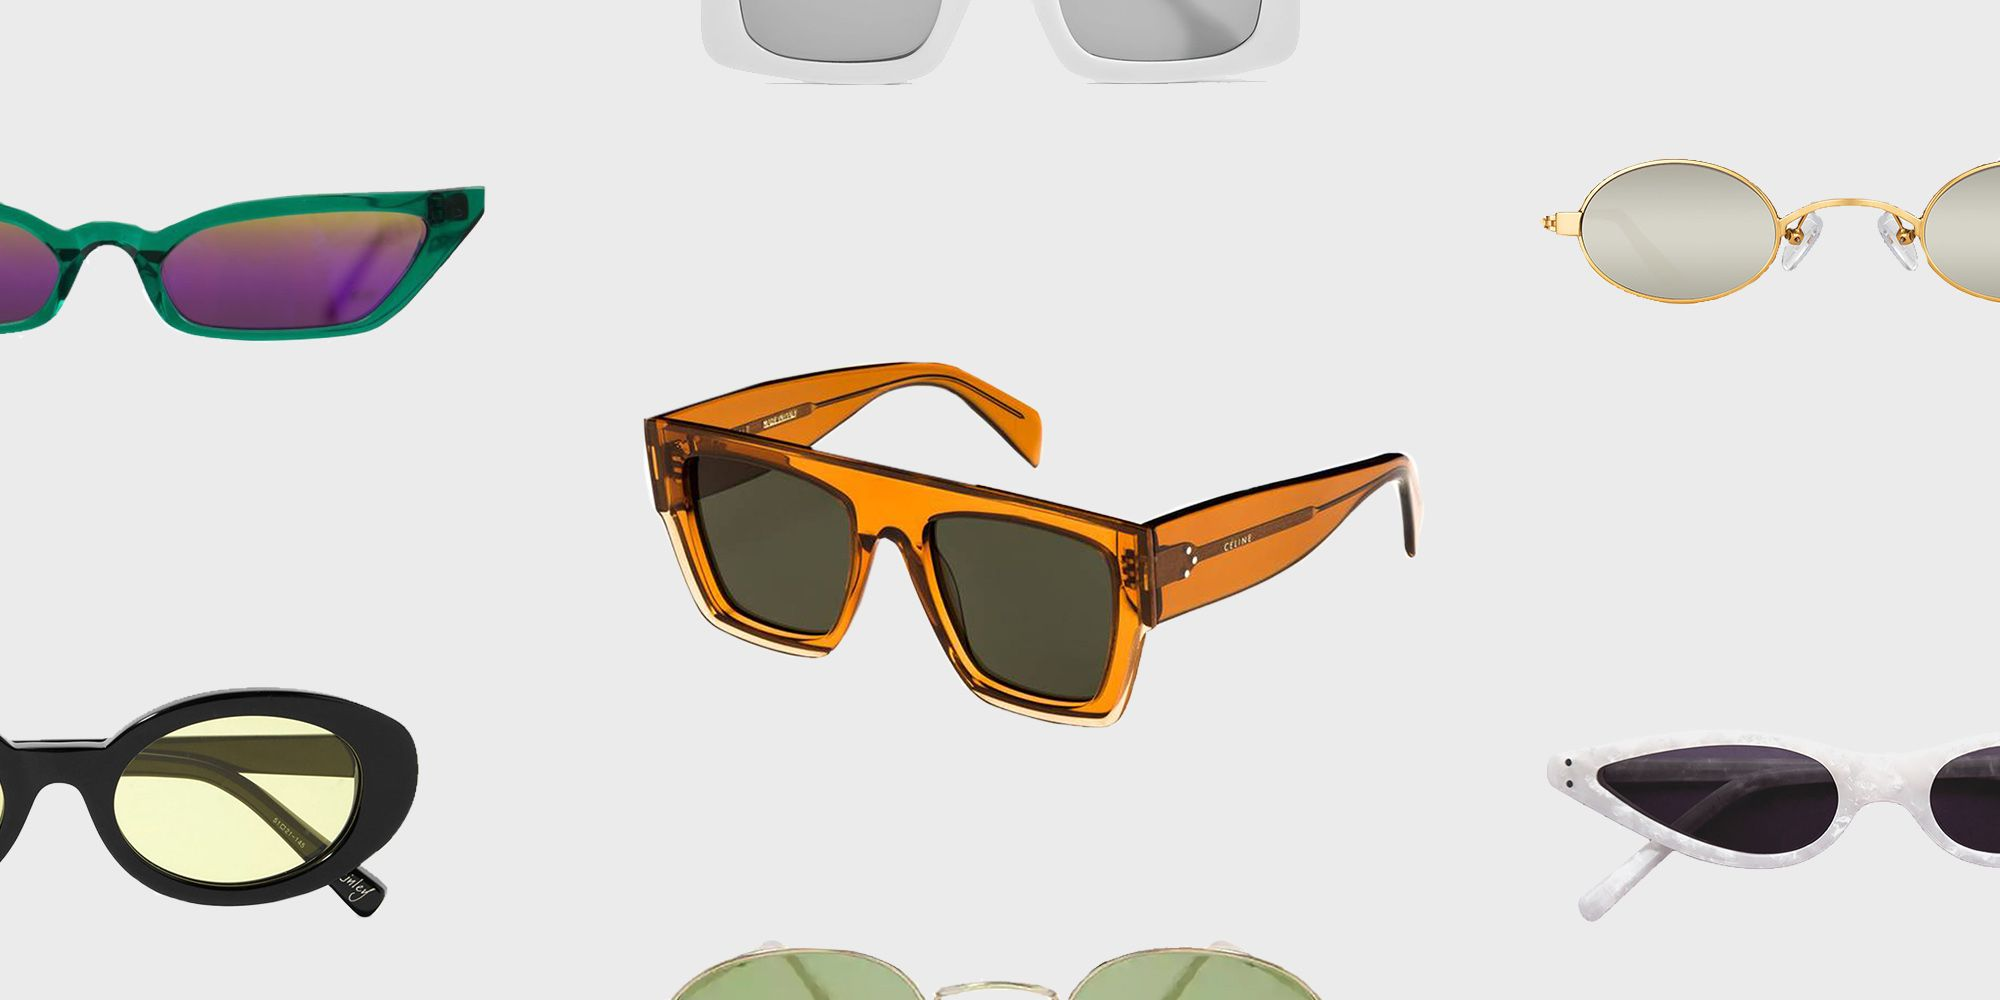 2dc9d2305f Purposefully Unflattering Sunglasses Are the Next Trend to Test Drive